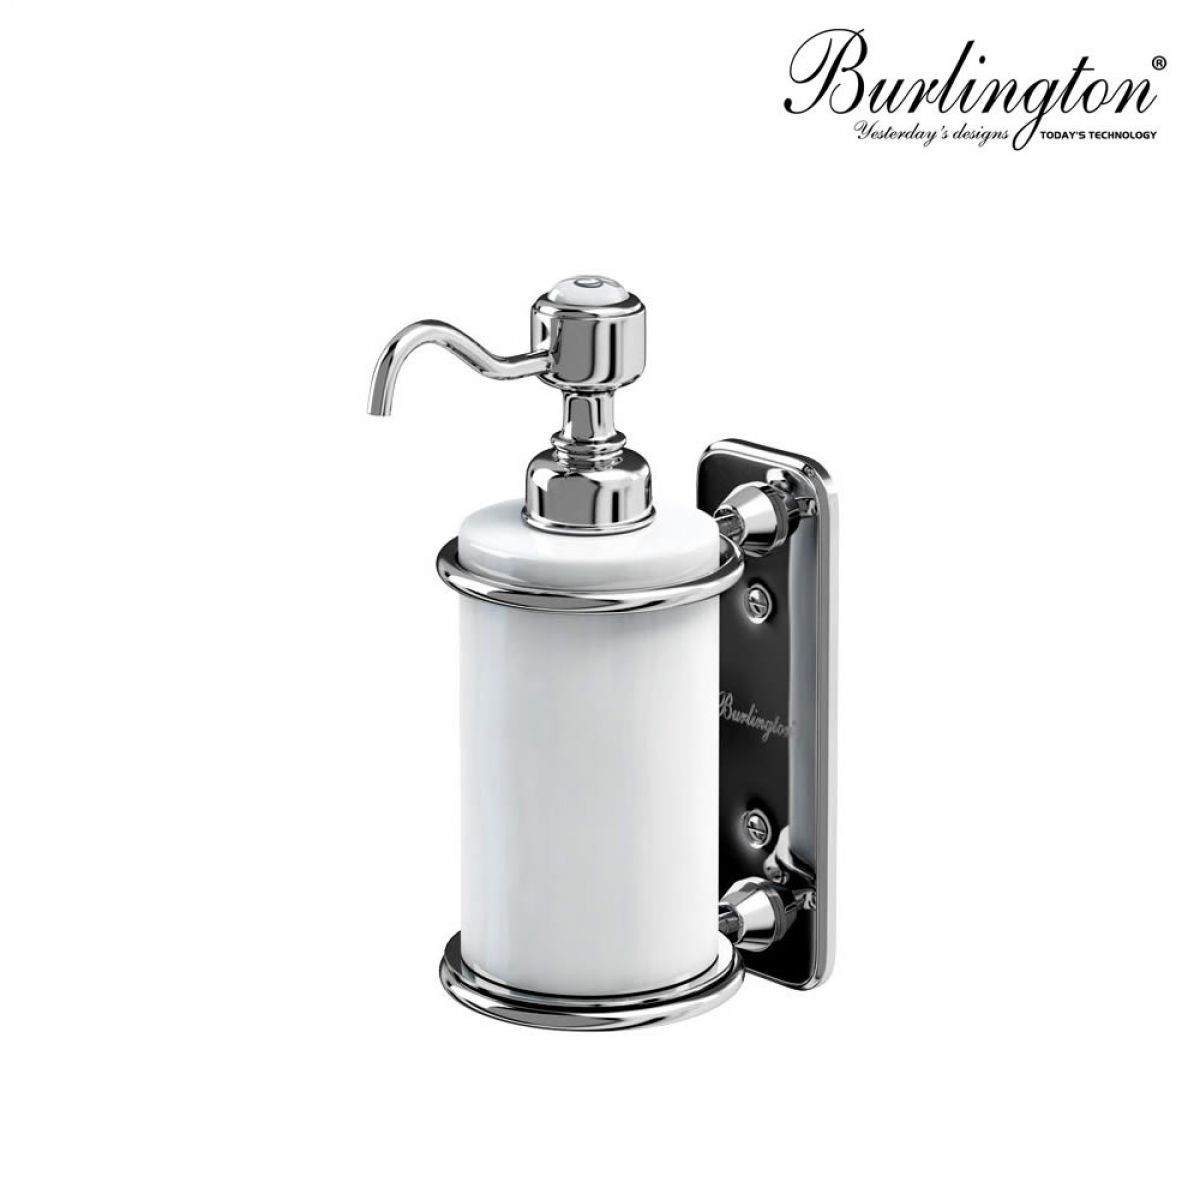 Burlington Traditional Wall Mounted Liquid Soap Dispenser Wall Mounted Shower Soap Dispenser